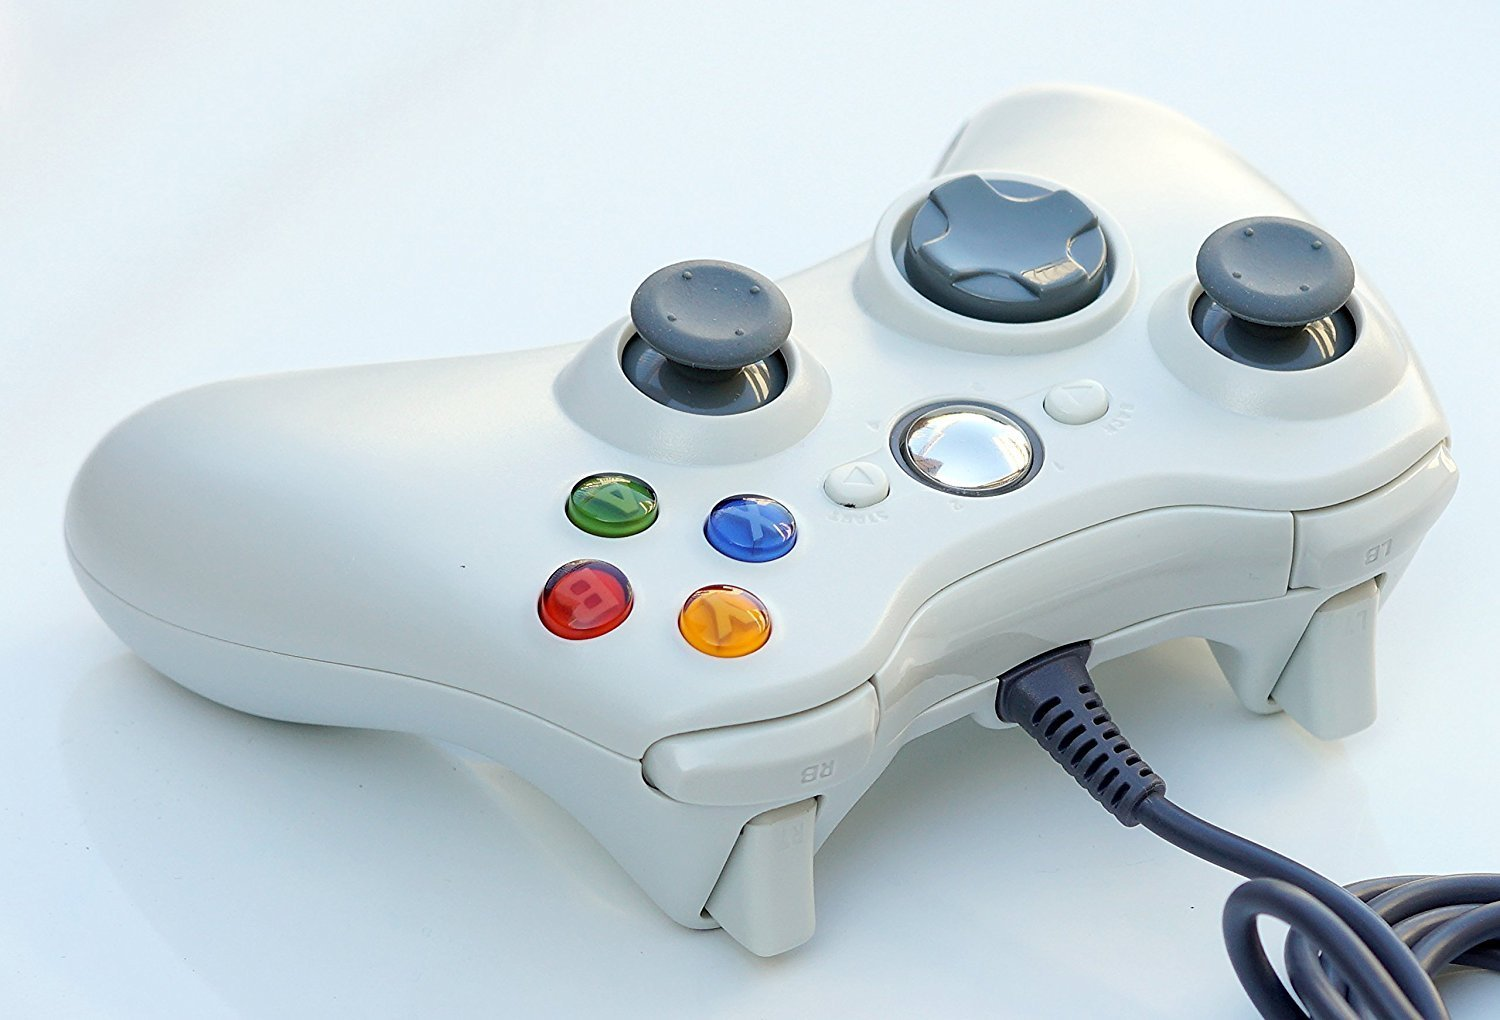 USB Wired Game Gaming Pad Controller for Xbox 360, Windows 7 (X86 ...